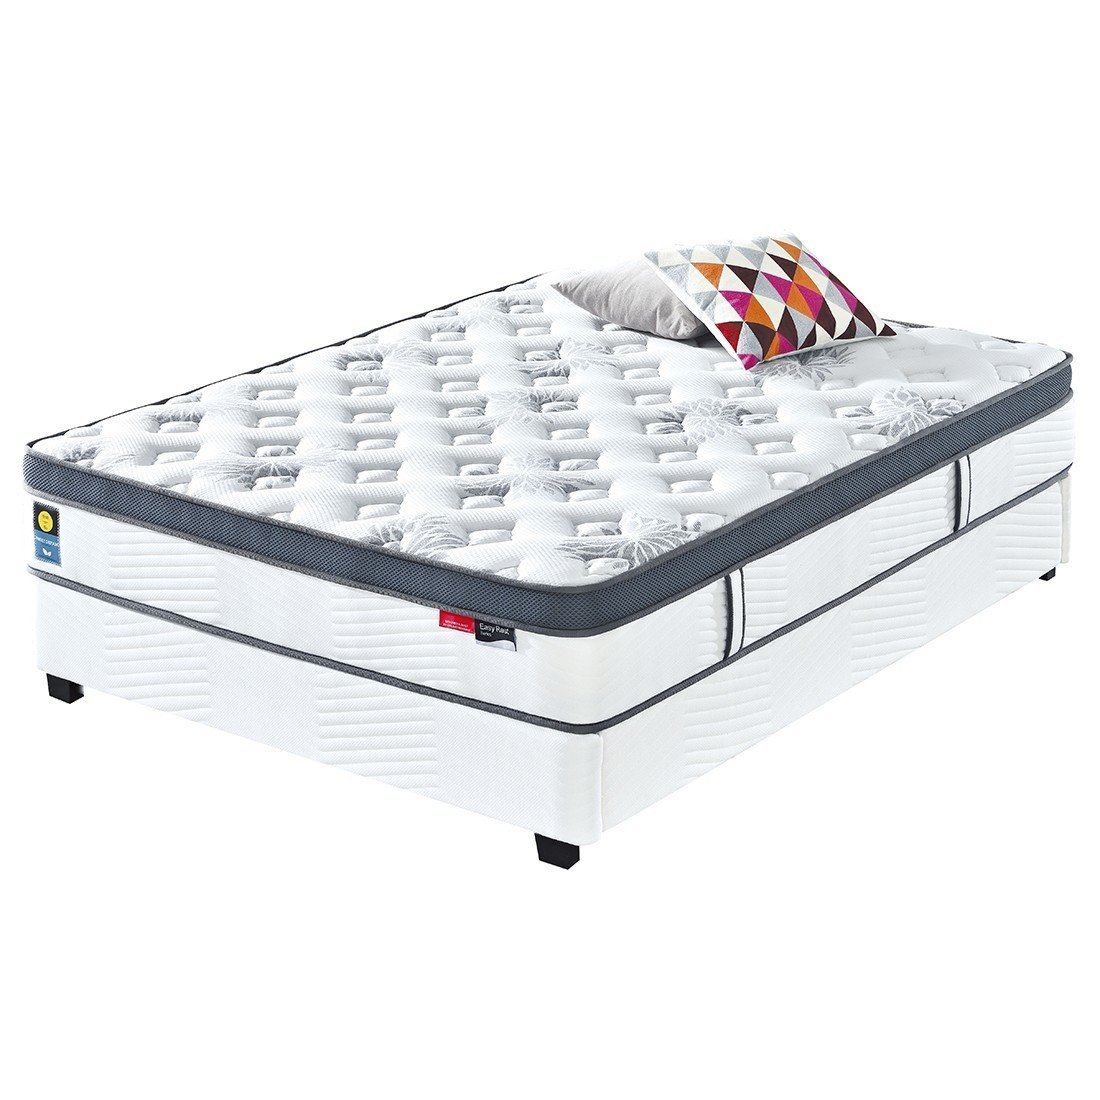 lit led julia blanc 160cm avec matelas star en latex. Black Bedroom Furniture Sets. Home Design Ideas